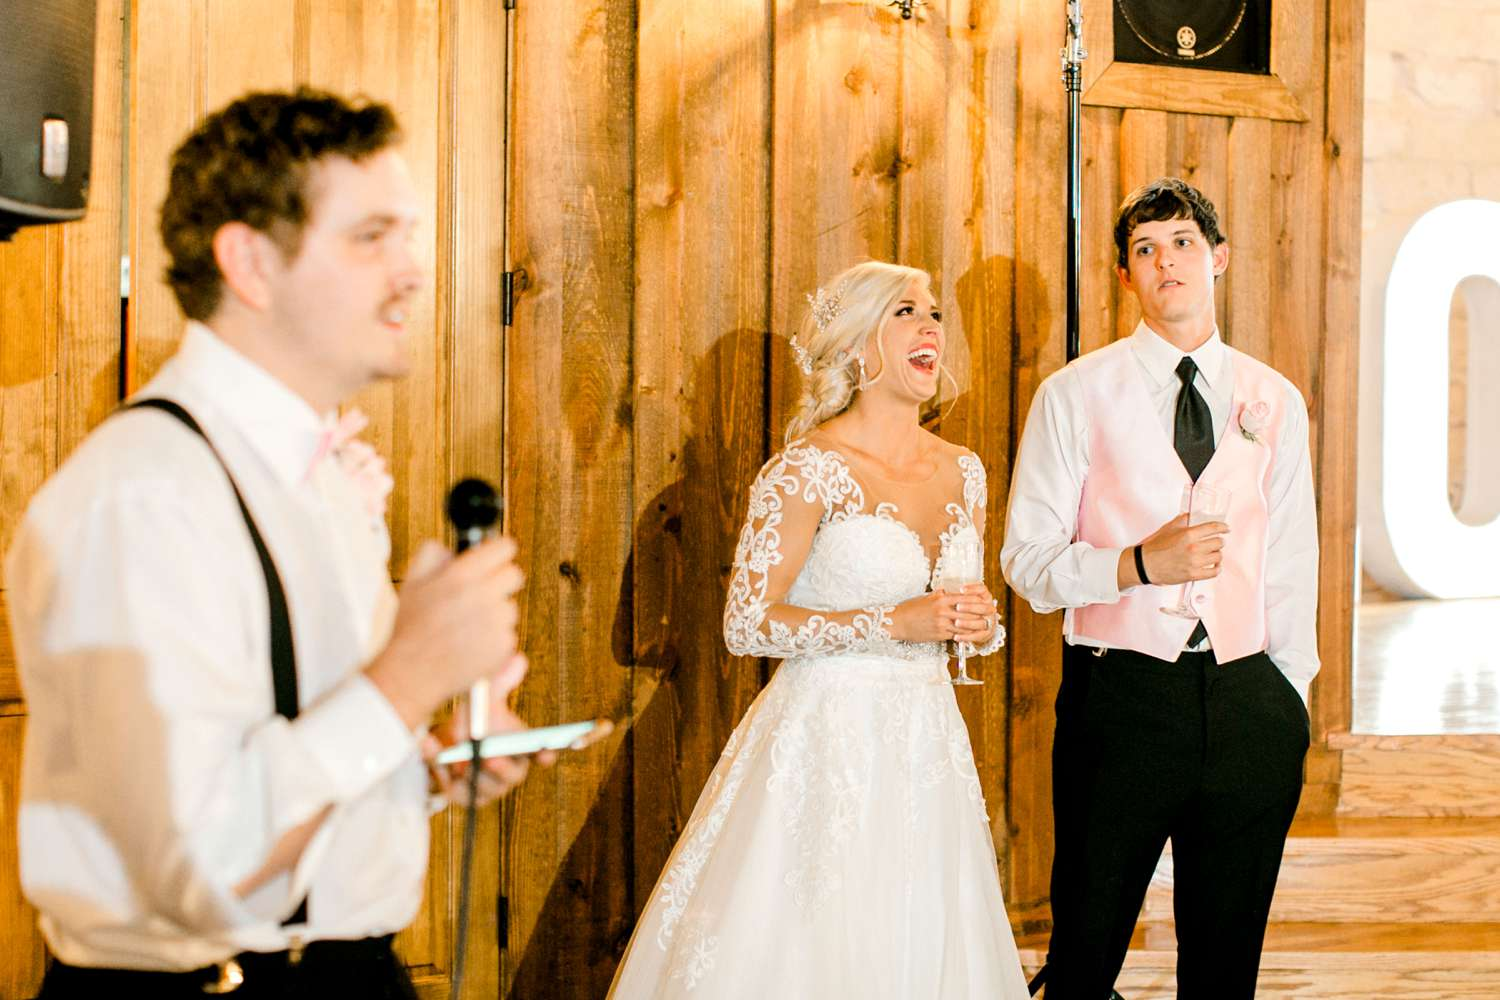 JESSICA+LYLE+NEEL+THE_SPRINGS_EVENTS_WEDDING_OKLAHOMA_ALLEEJ_PHOTOGRAPHER_0150.jpg